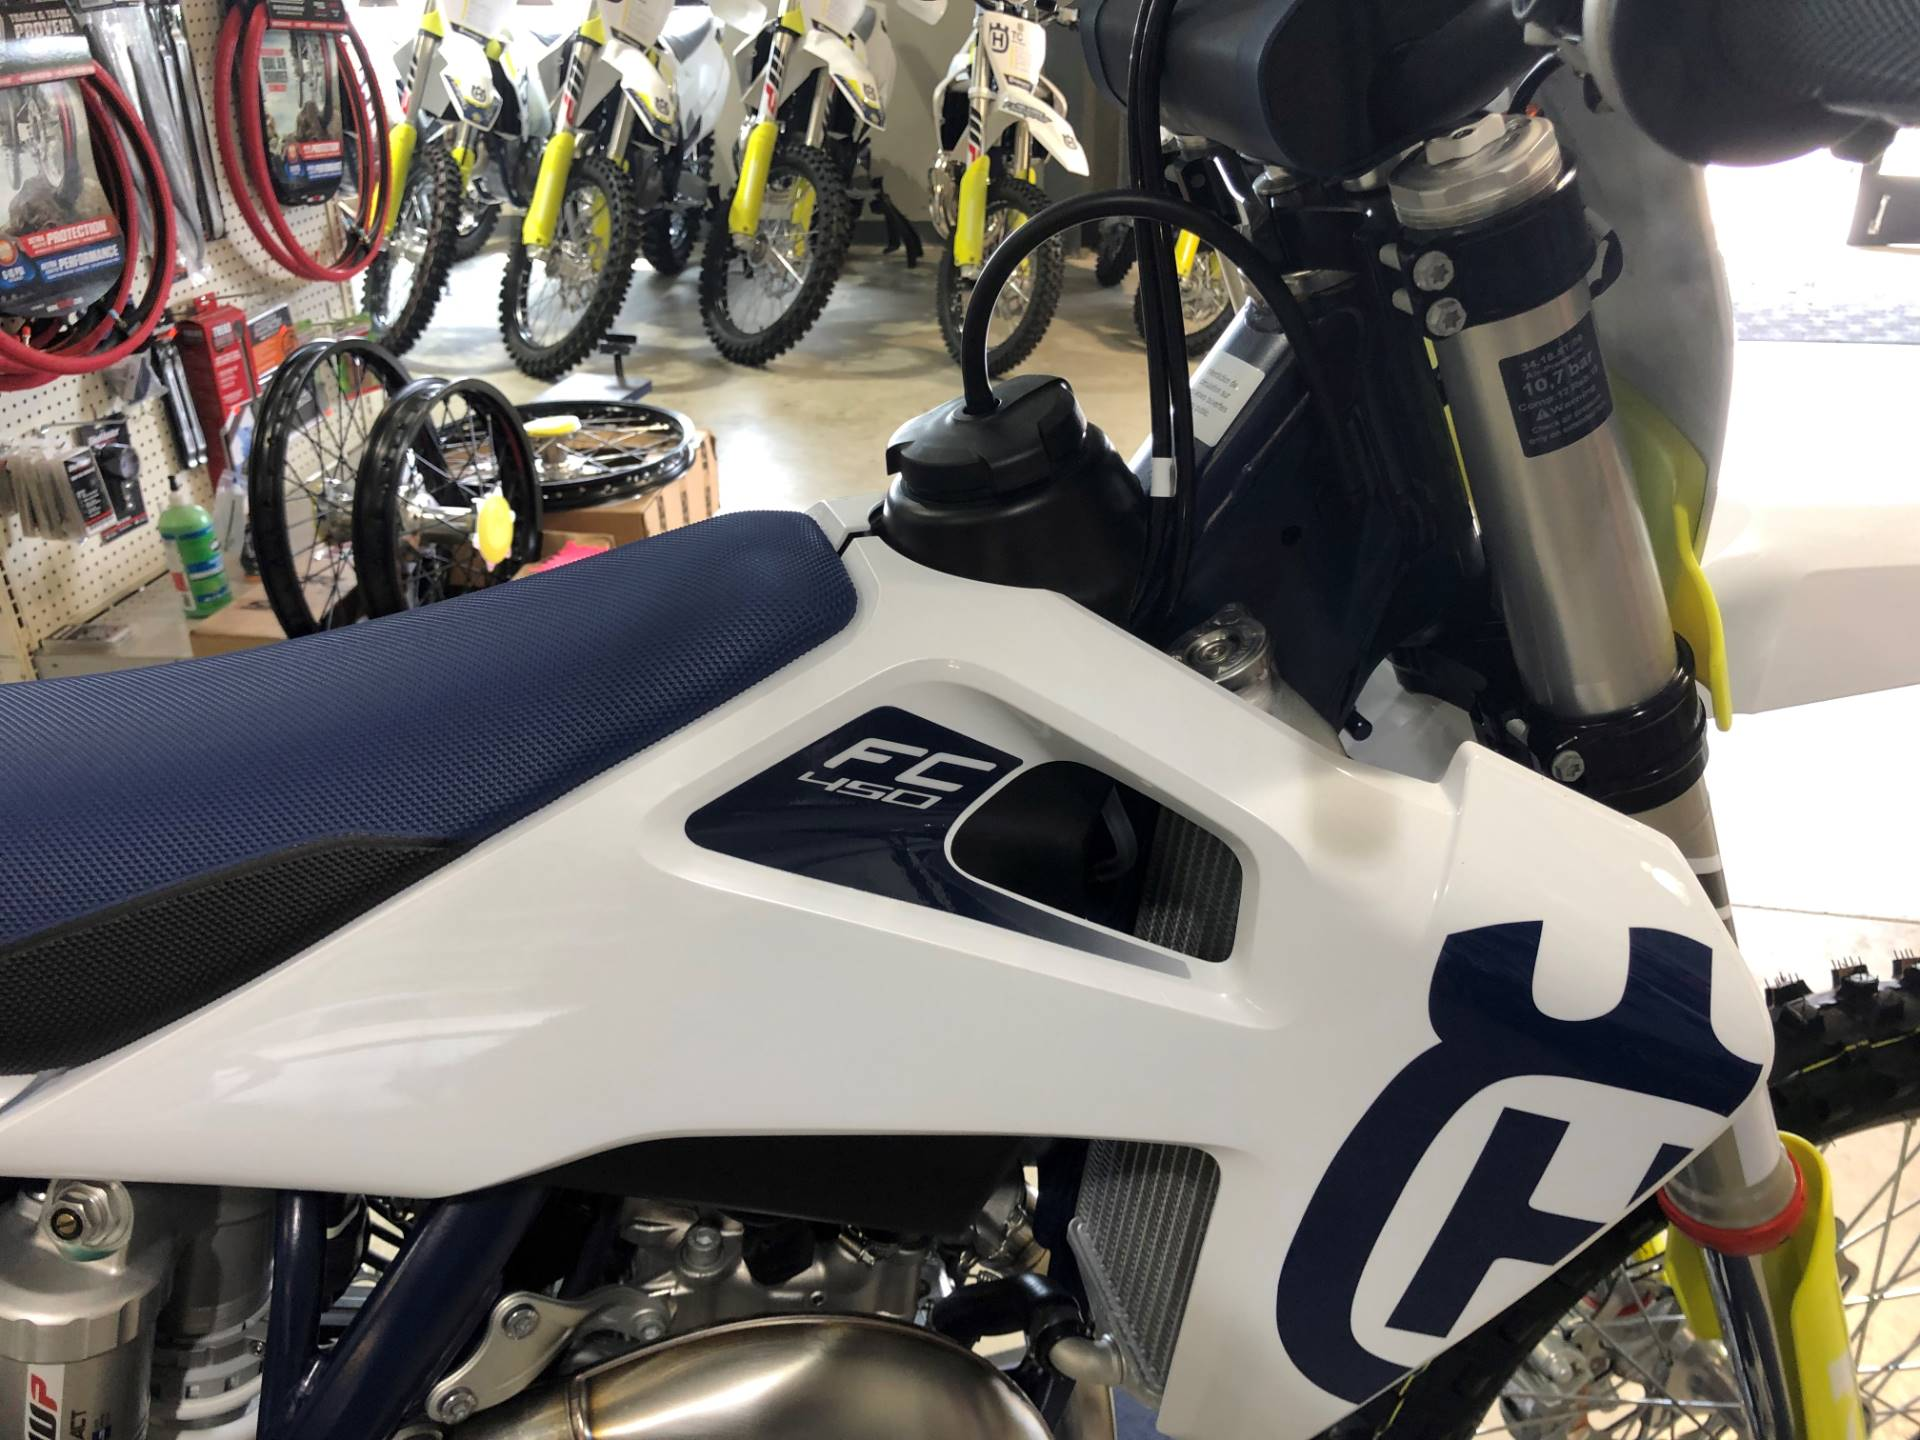 2020 Husqvarna FC 450 in Slovan, Pennsylvania - Photo 2